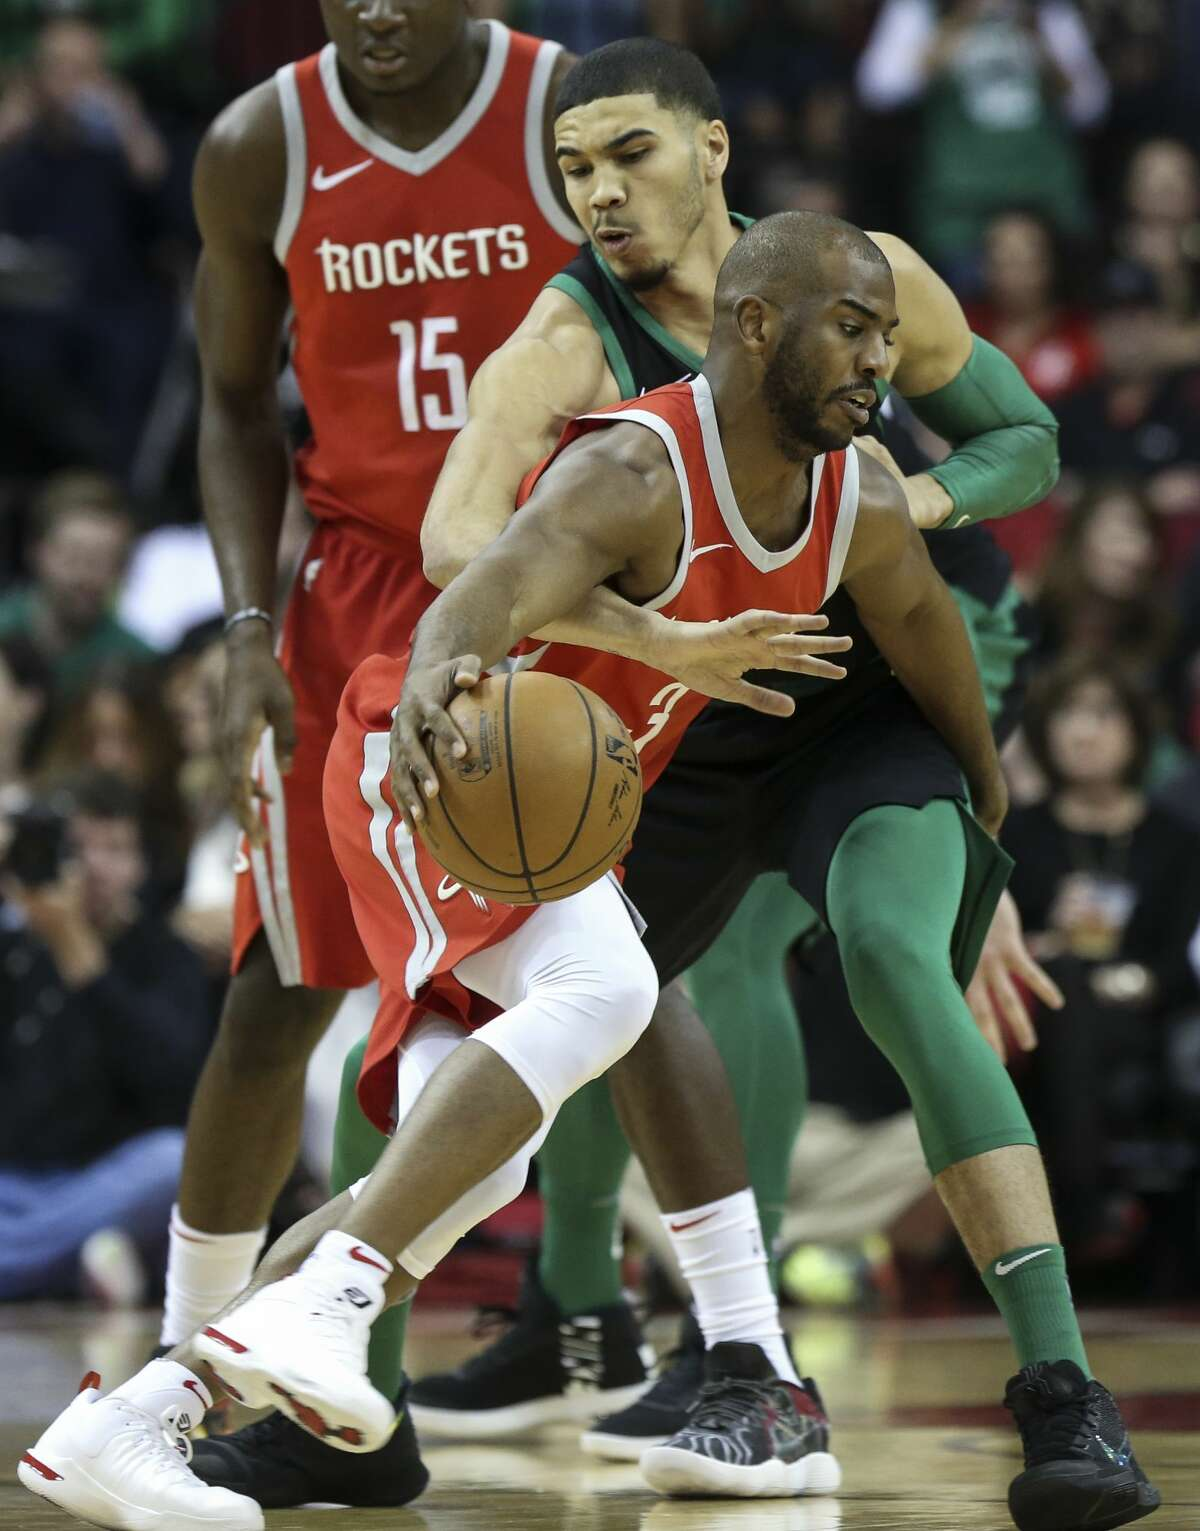 Boston Celtics forward Jayson Tatum (0) tries to strip the ball away from Houston Rockets guard Chris Paul (3) during the first quarter of a NBA game at the Toyota Center on Saturday, March 3, 2018, in Houston. ( Yi-Chin Lee / Houston Chronicle )